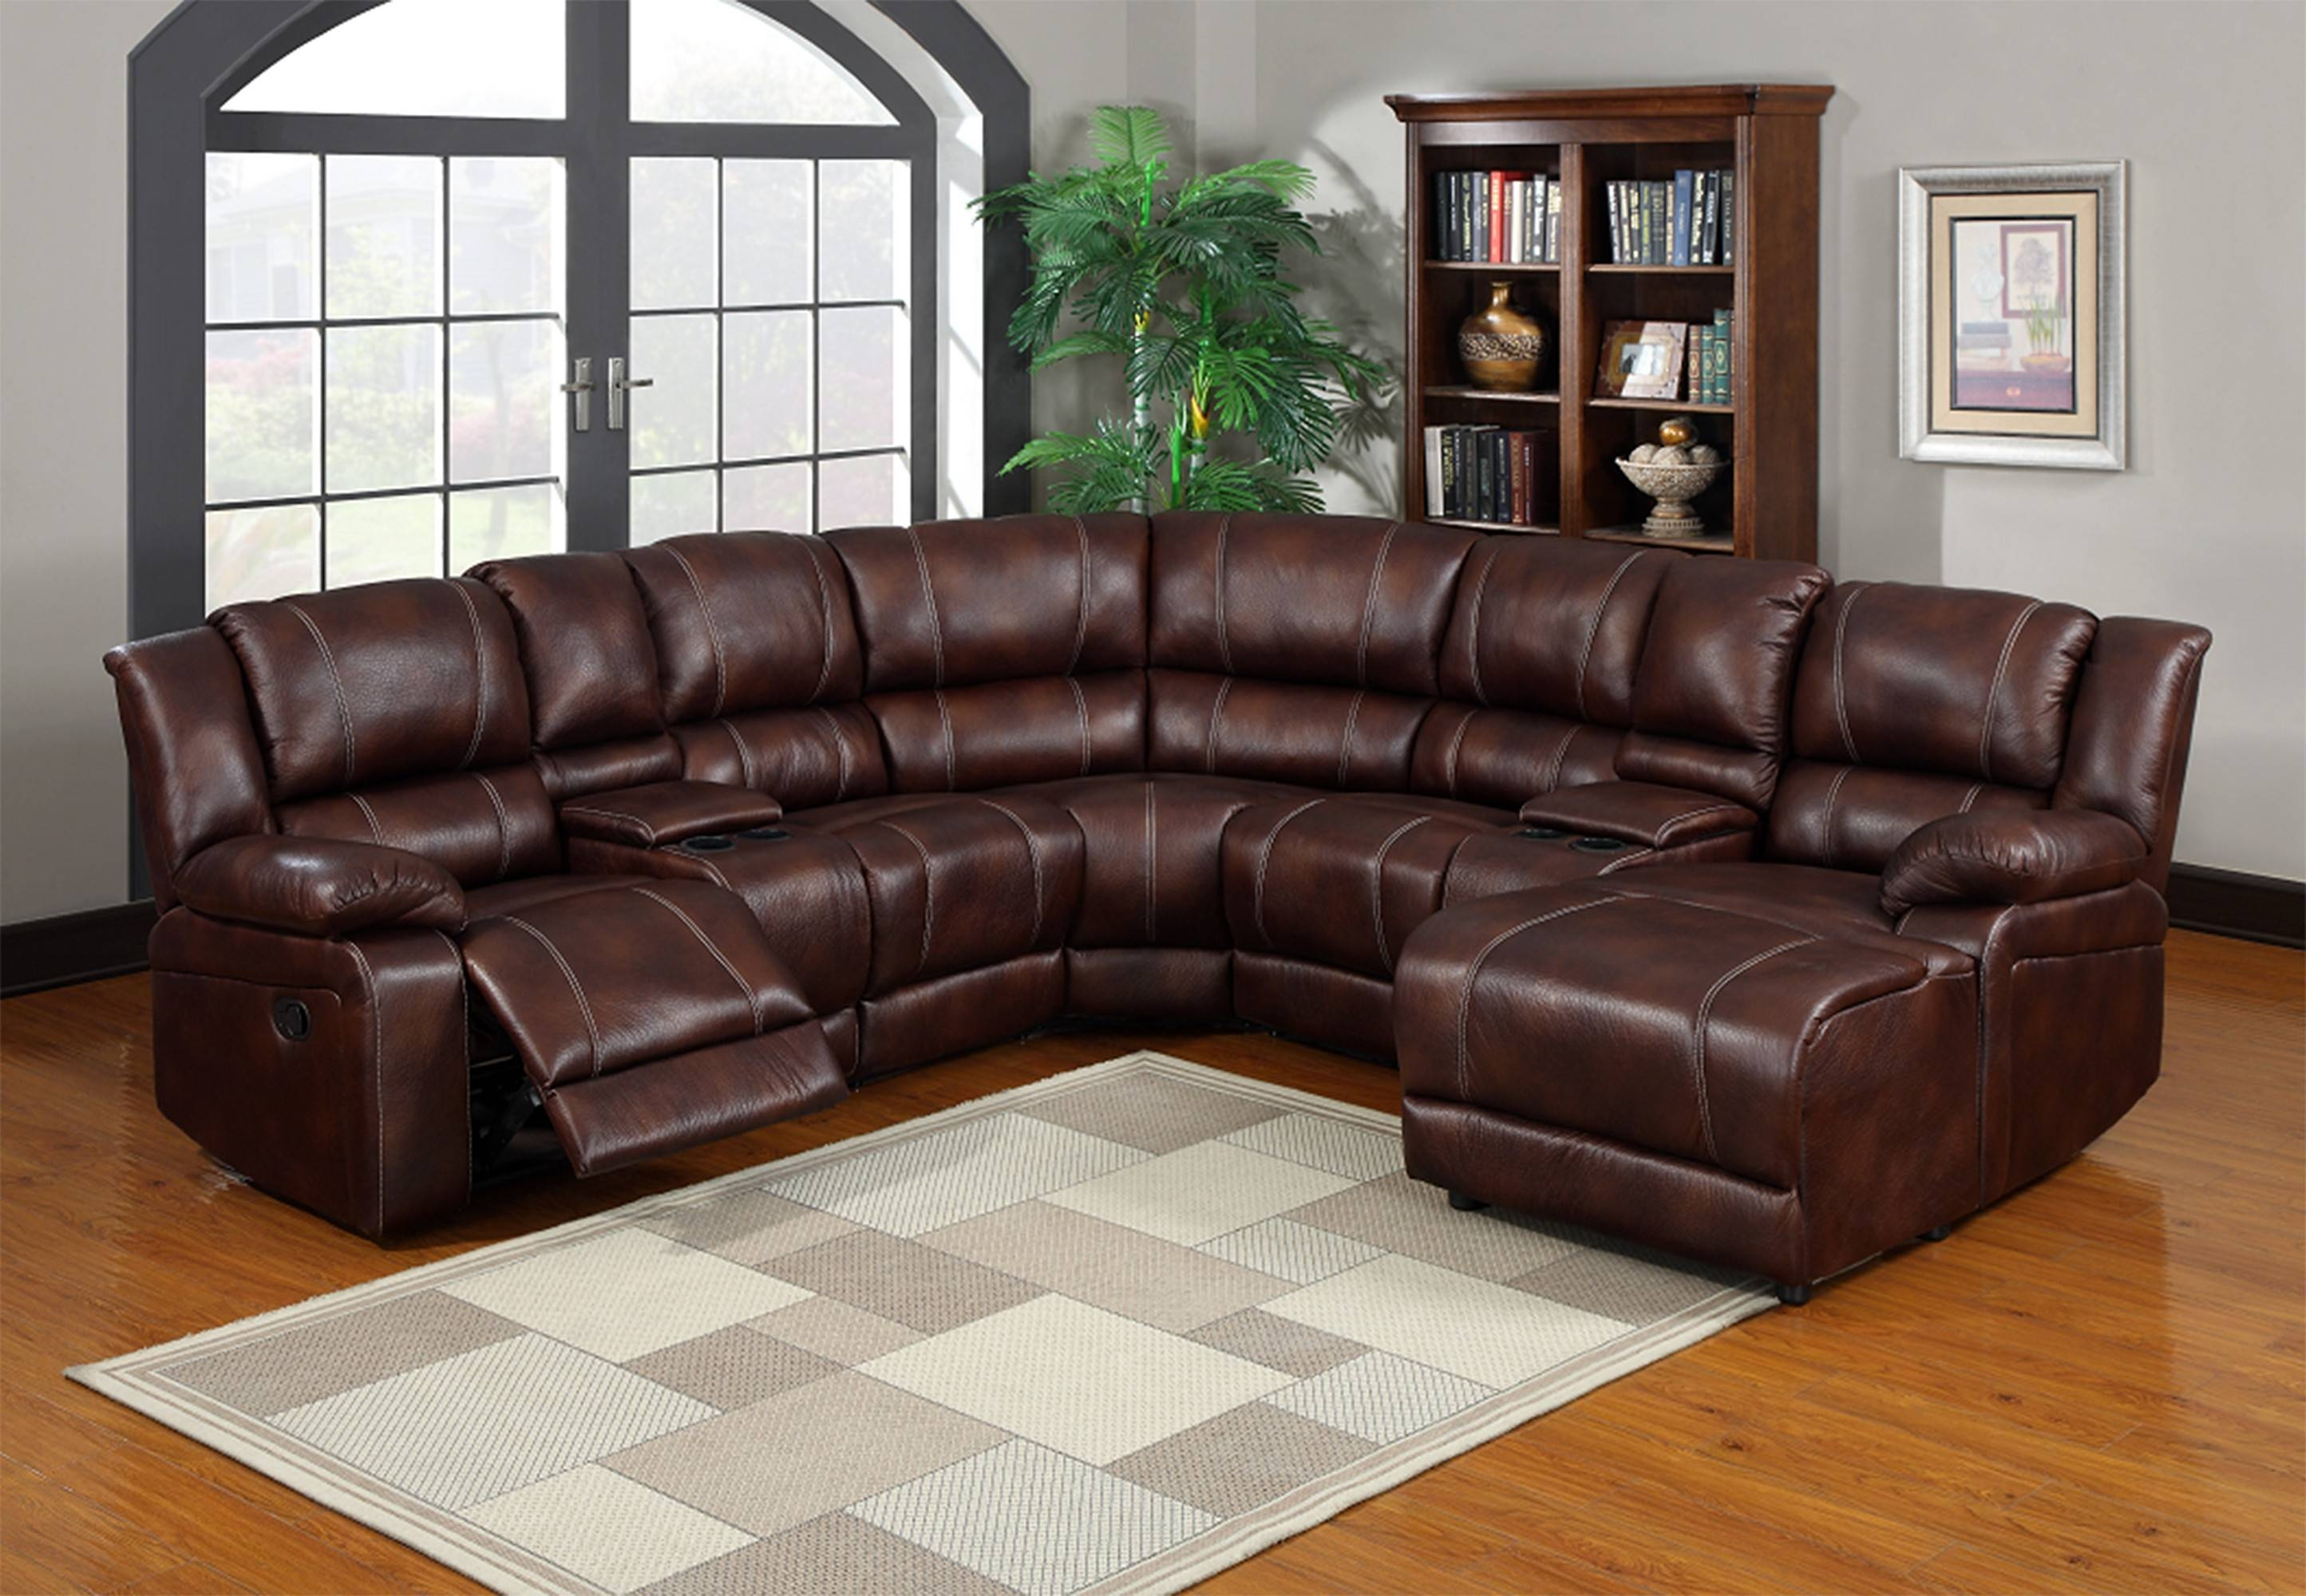 Remarkable Leather Motion Sectional Sofa 67 On Sectional Sofas throughout Leather Motion Sectional Sofa (Image 20 of 25)